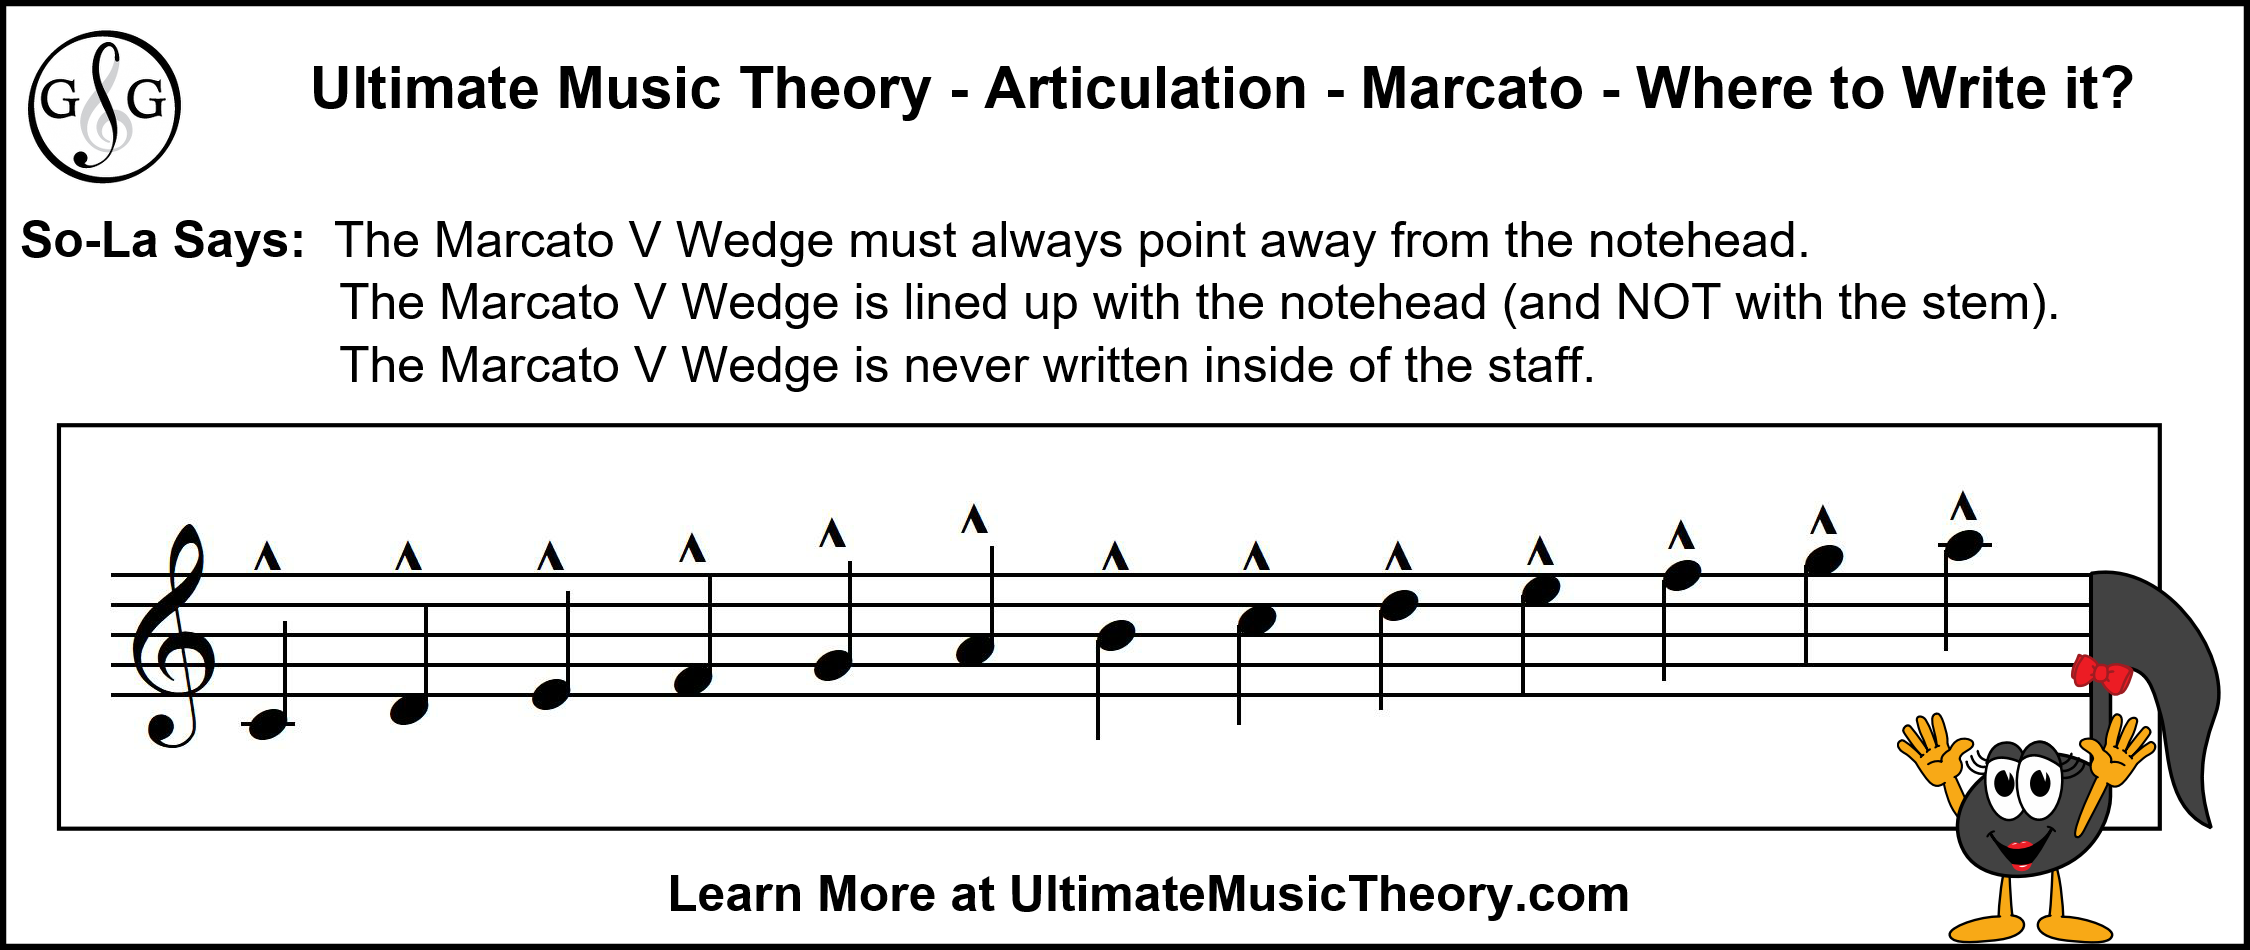 UMT Articulation - Marcato Where to Write It